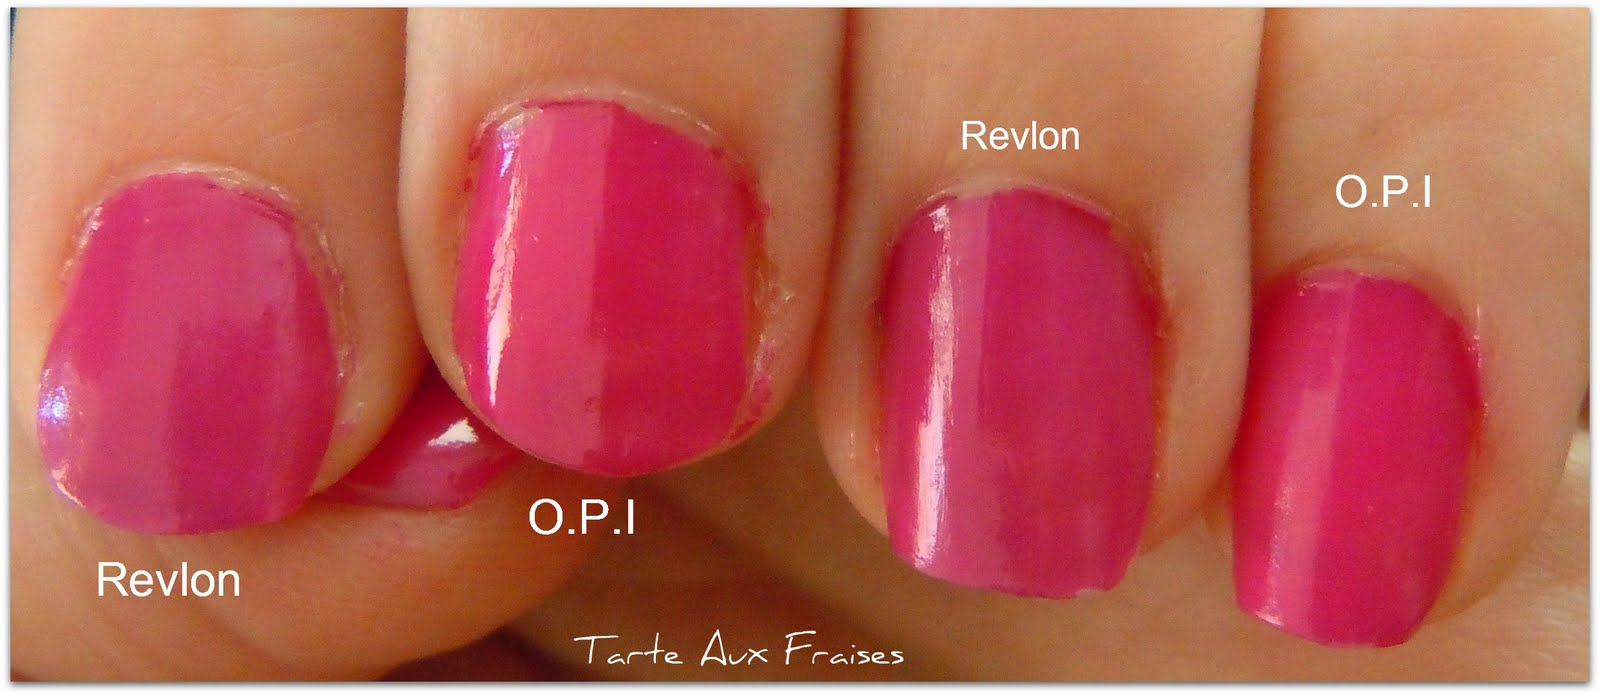 Tarte Aux Fraises: Nail Polish: Revlon - 375 Passion Fruit vs. OPI ...